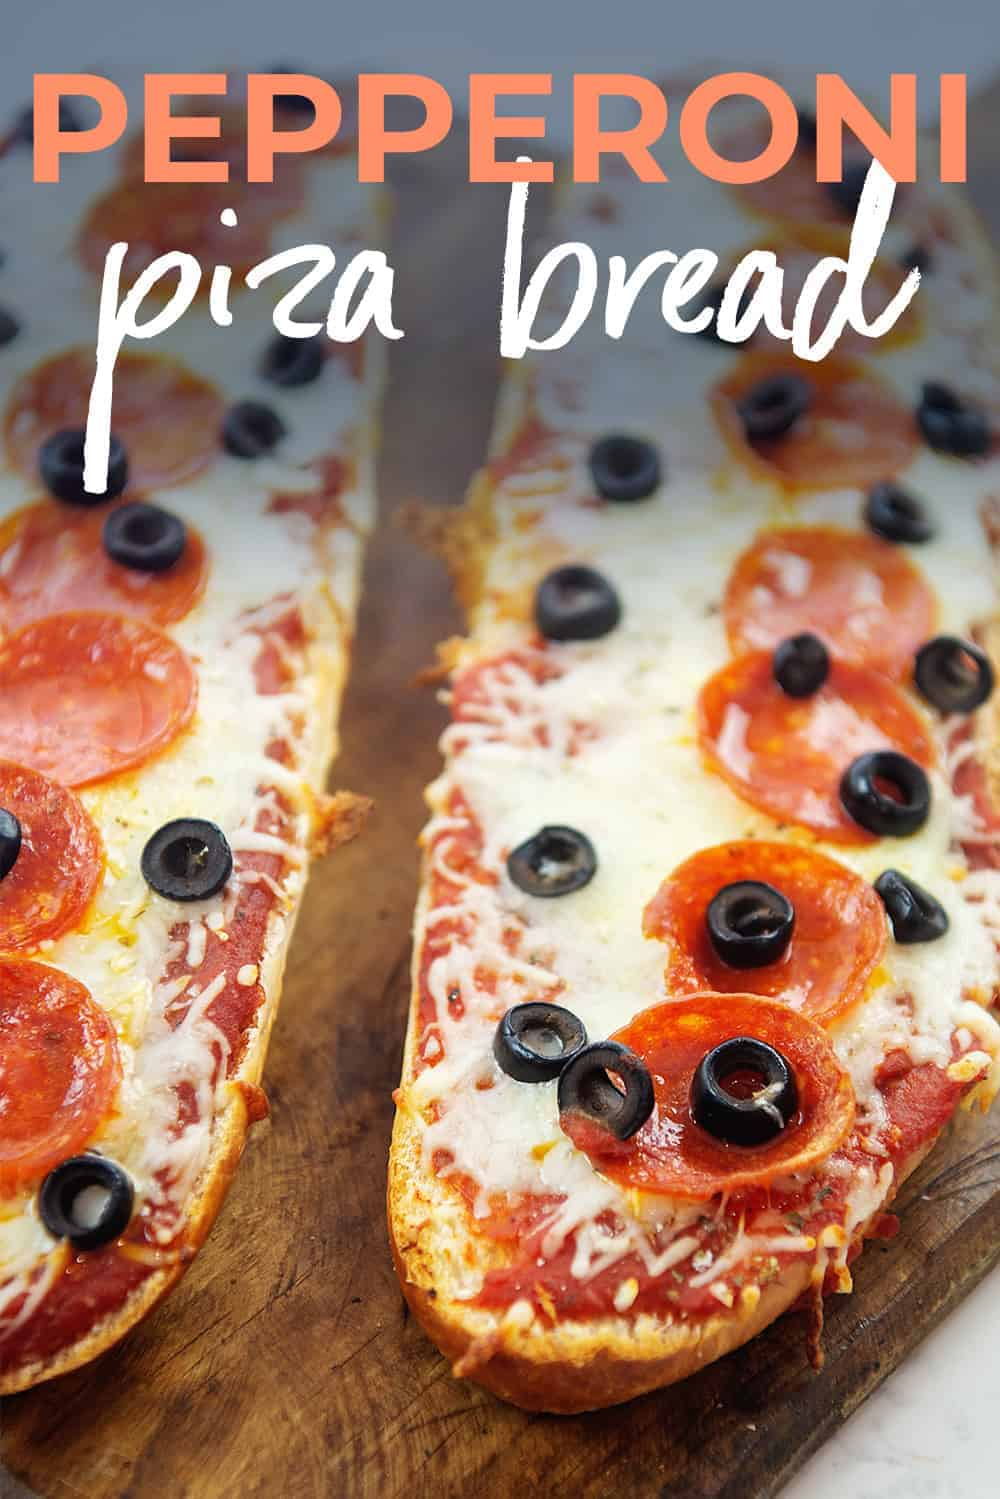 pepperoni pizza bread on wooden board with text for PIntrest.